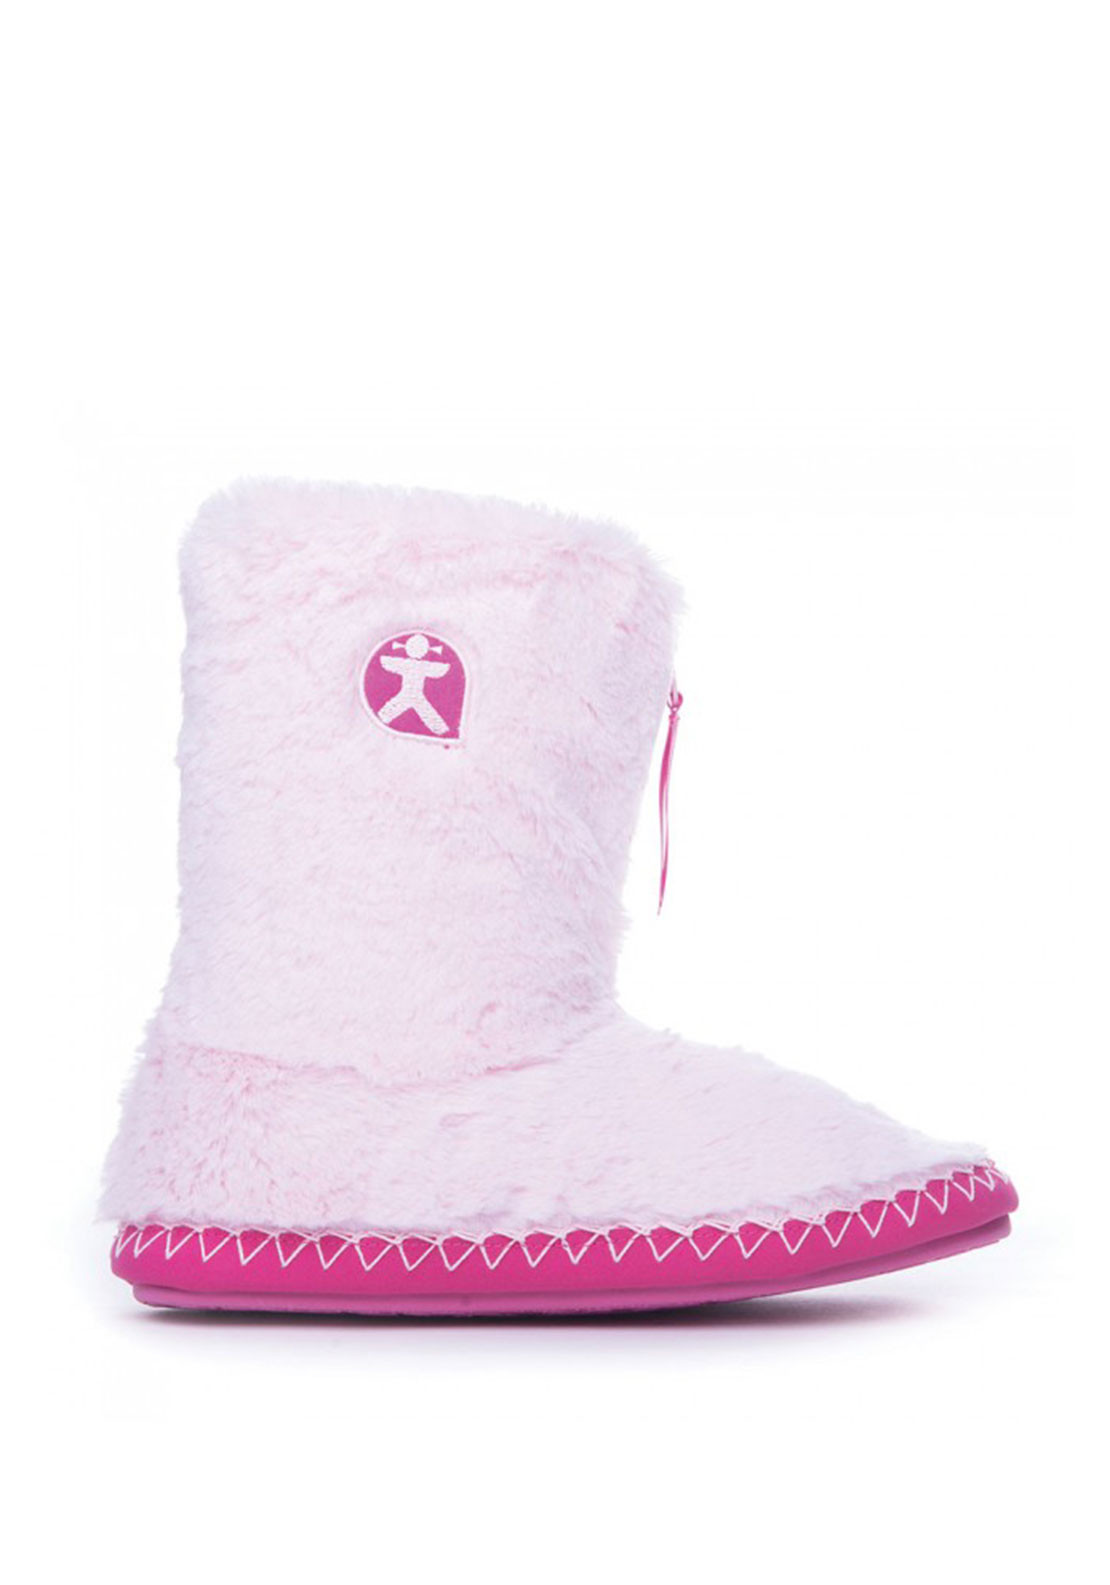 Bedroom Athletics Monroe Slipper Boots, Pink